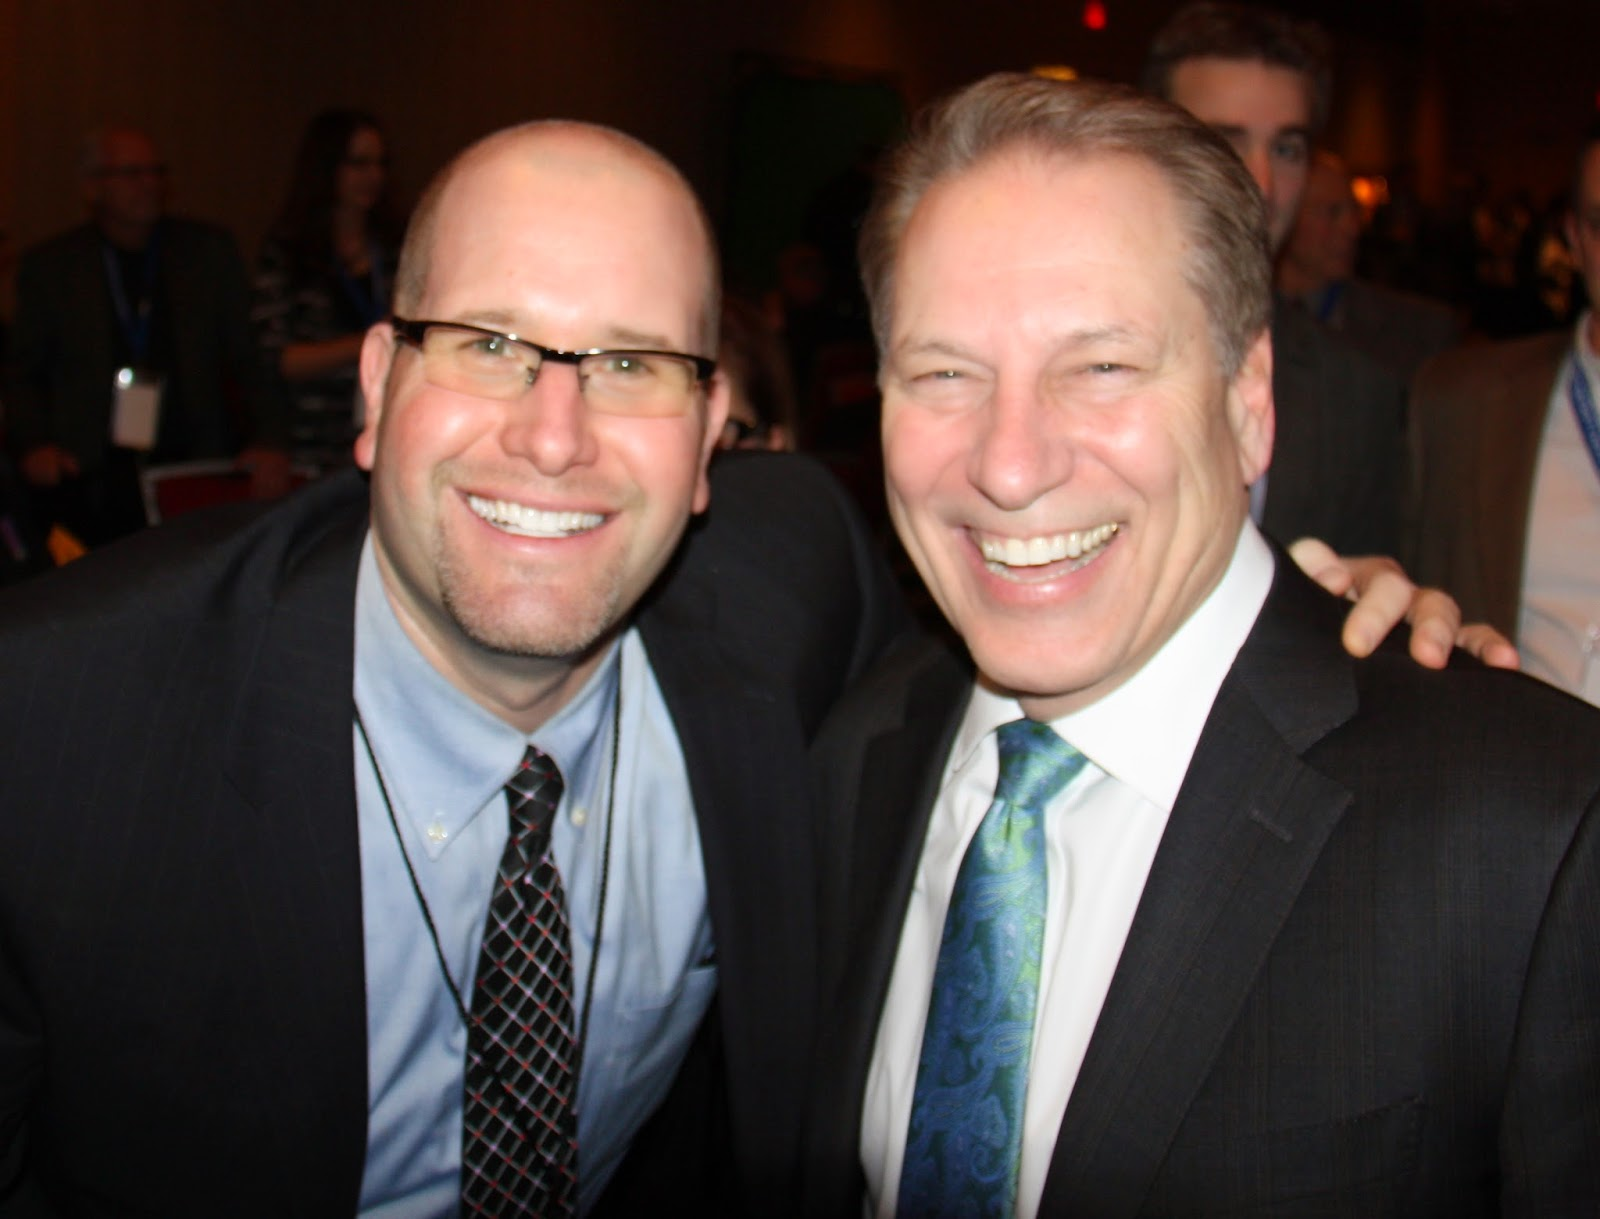 Rabbi Jason Miller and Michigan State University Basketball Coach Tom Izzo